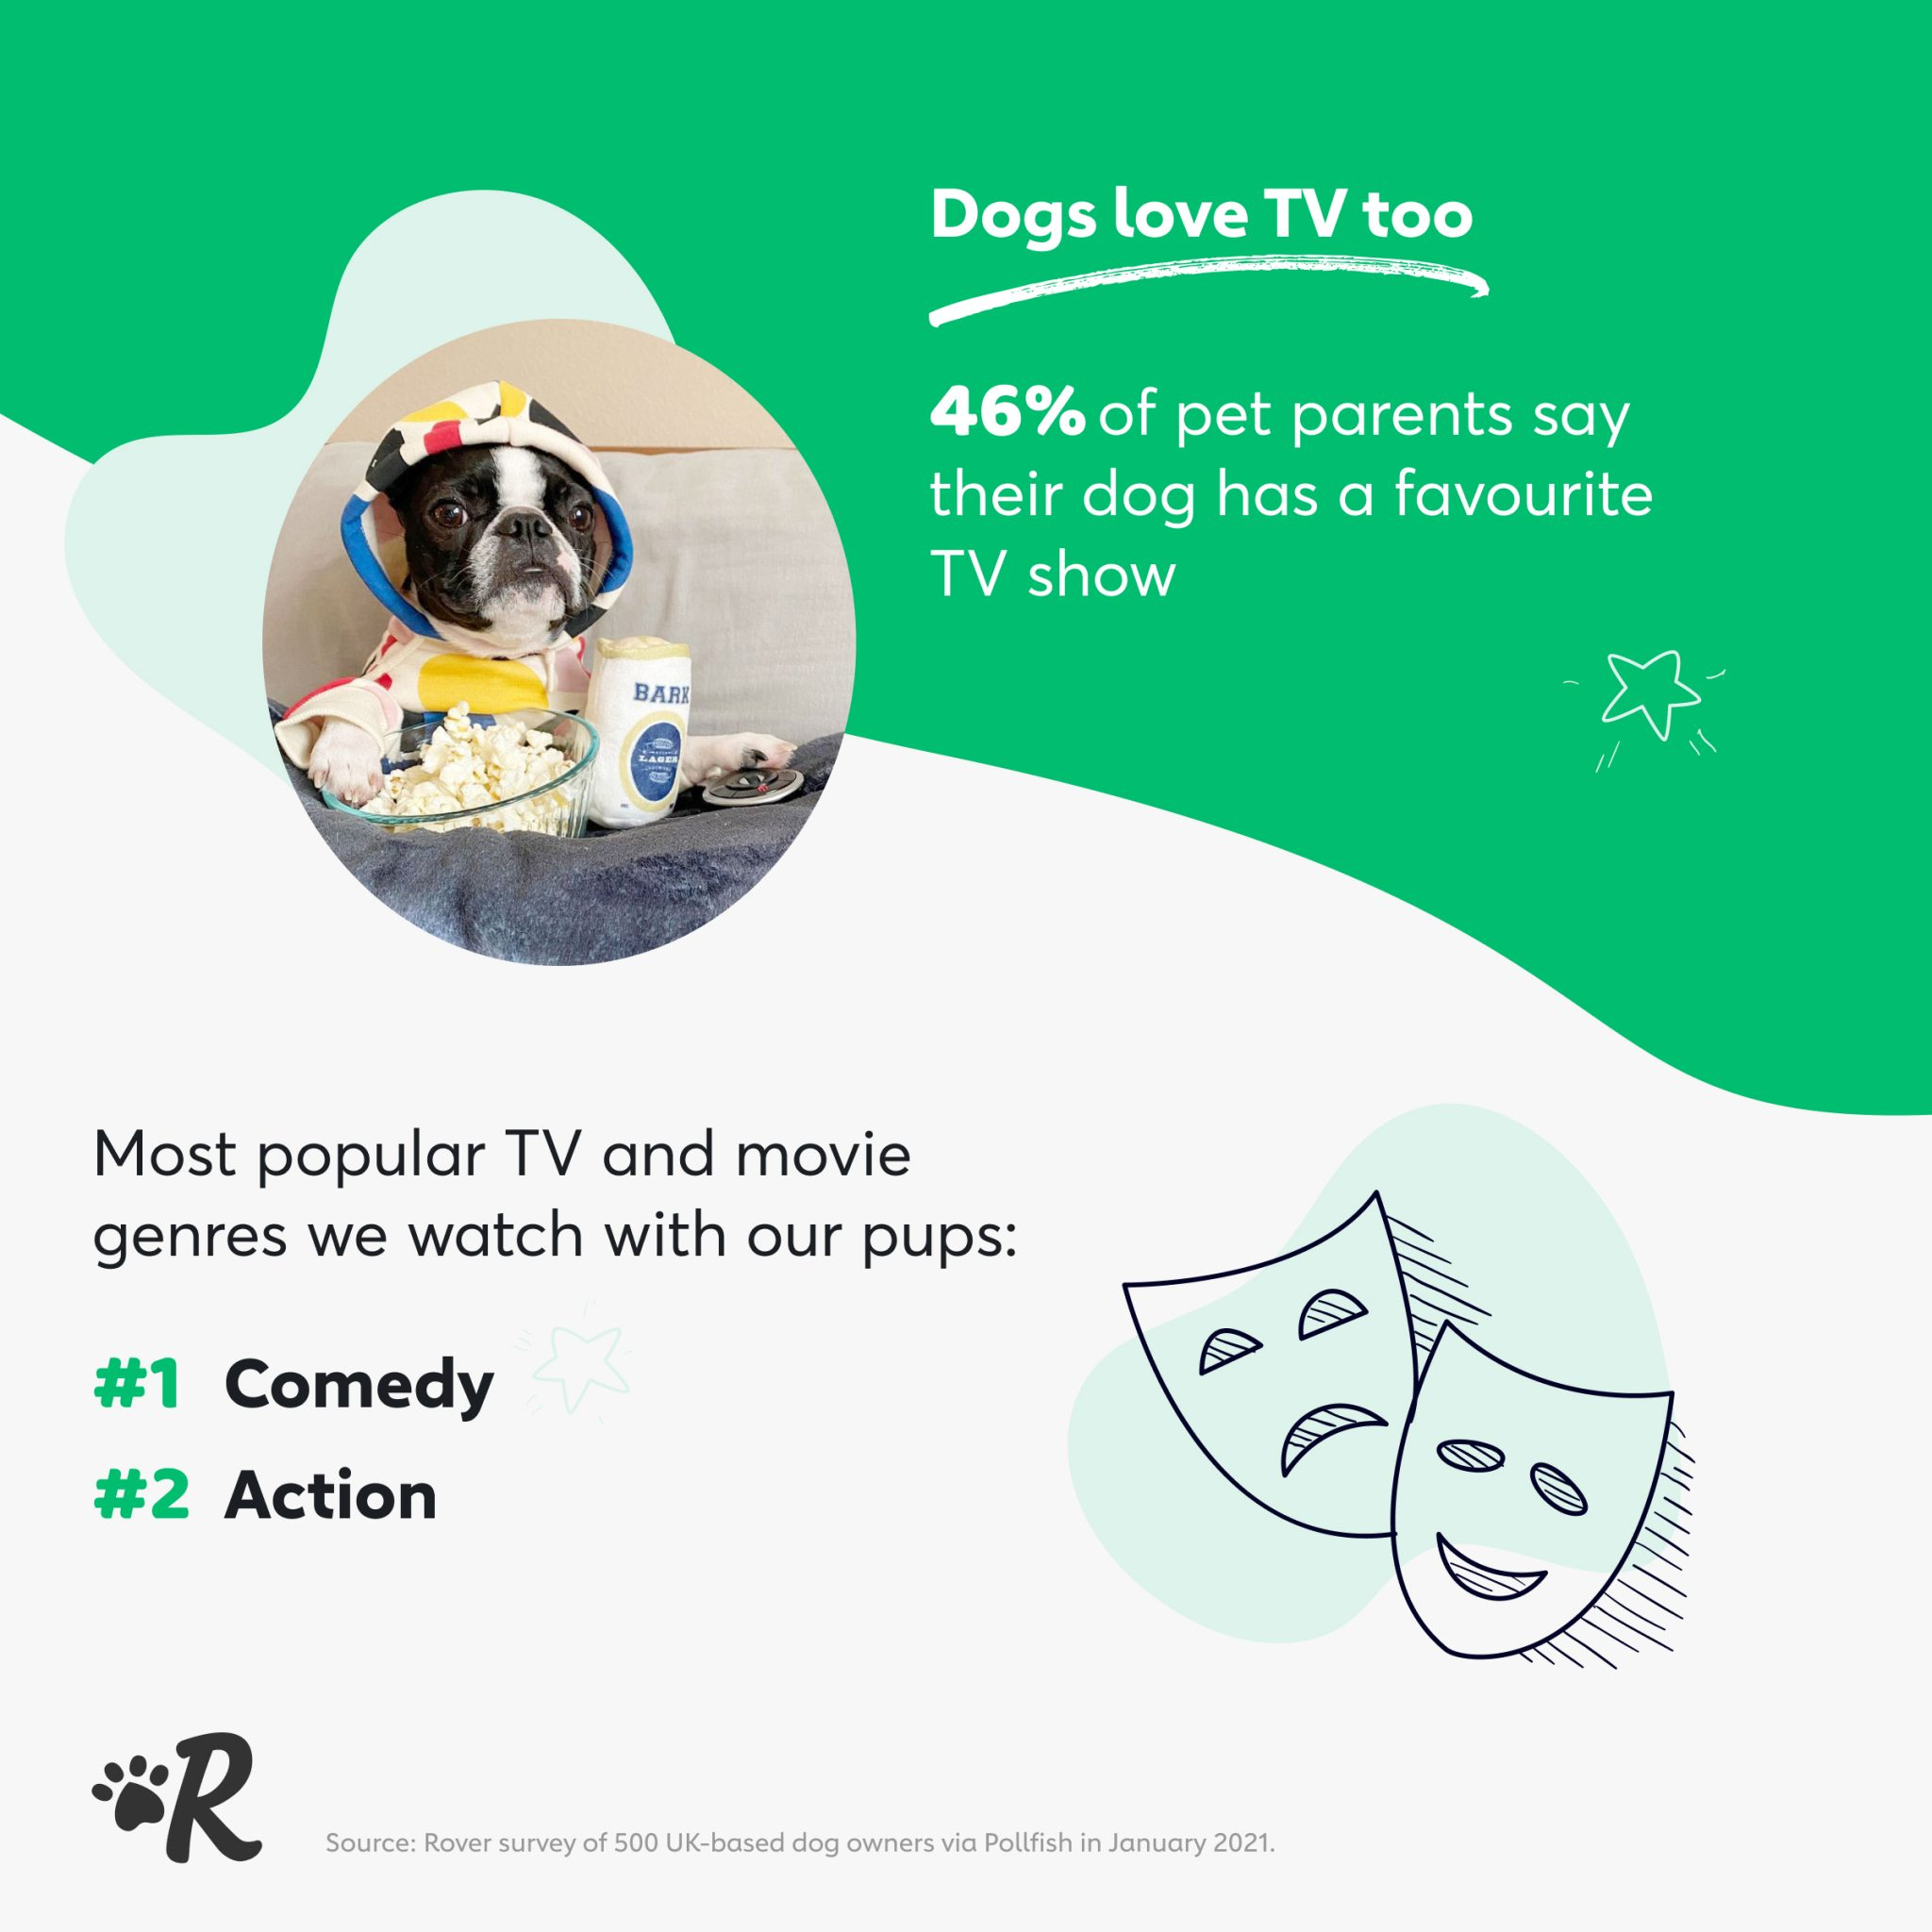 Infographic of survey results: The most popular genre of tv and movies among dog owners is comedy.